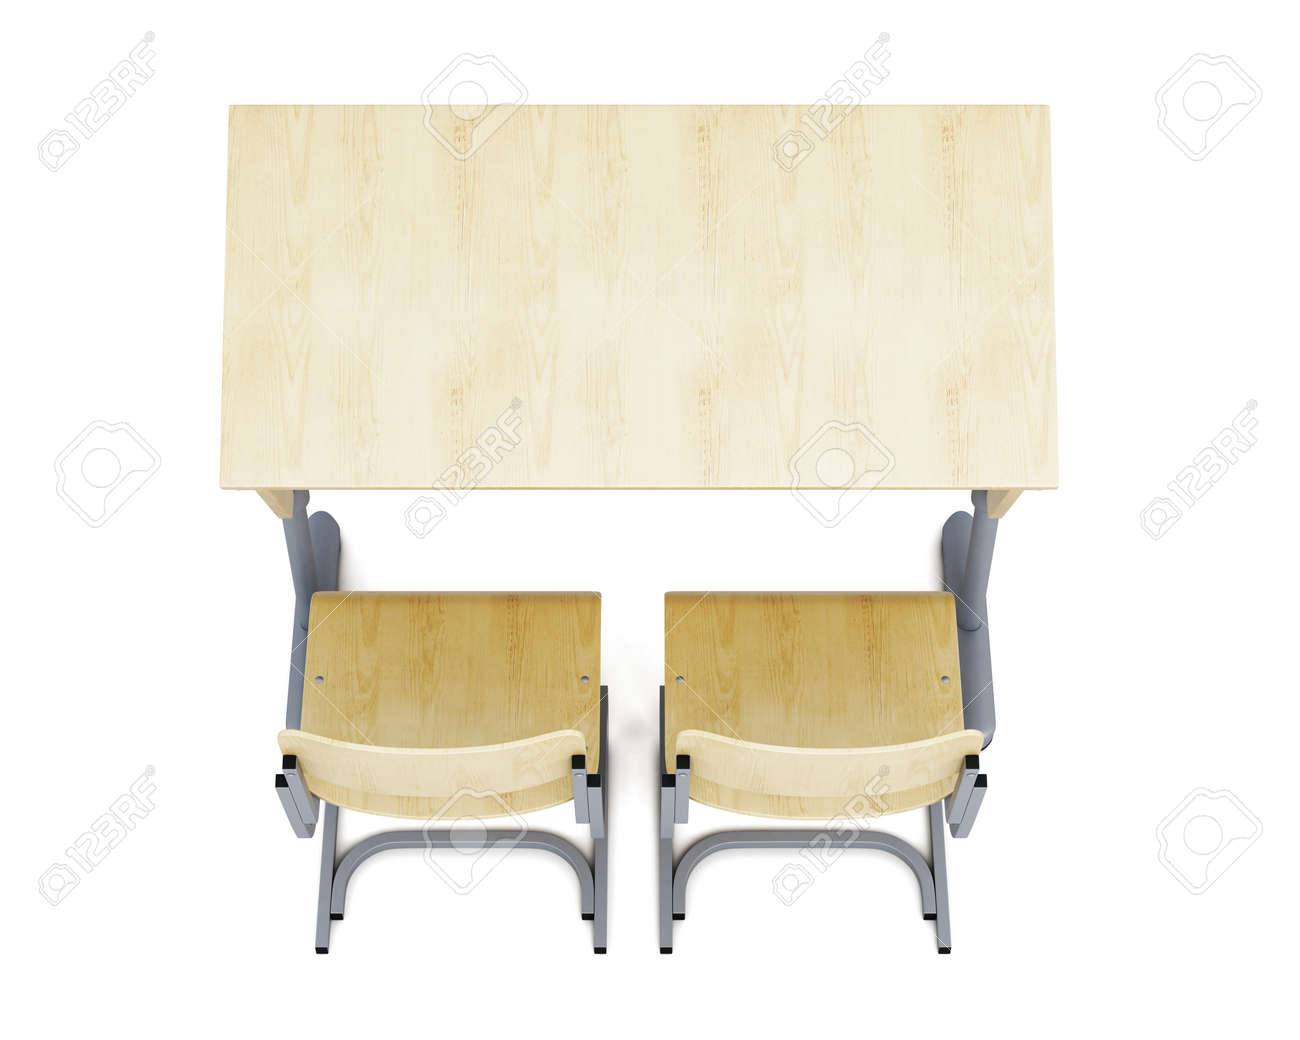 Superbe Stock Photo   Top View Of A School Desk And Chairs Isolated On White  Background. 3d Rendering.